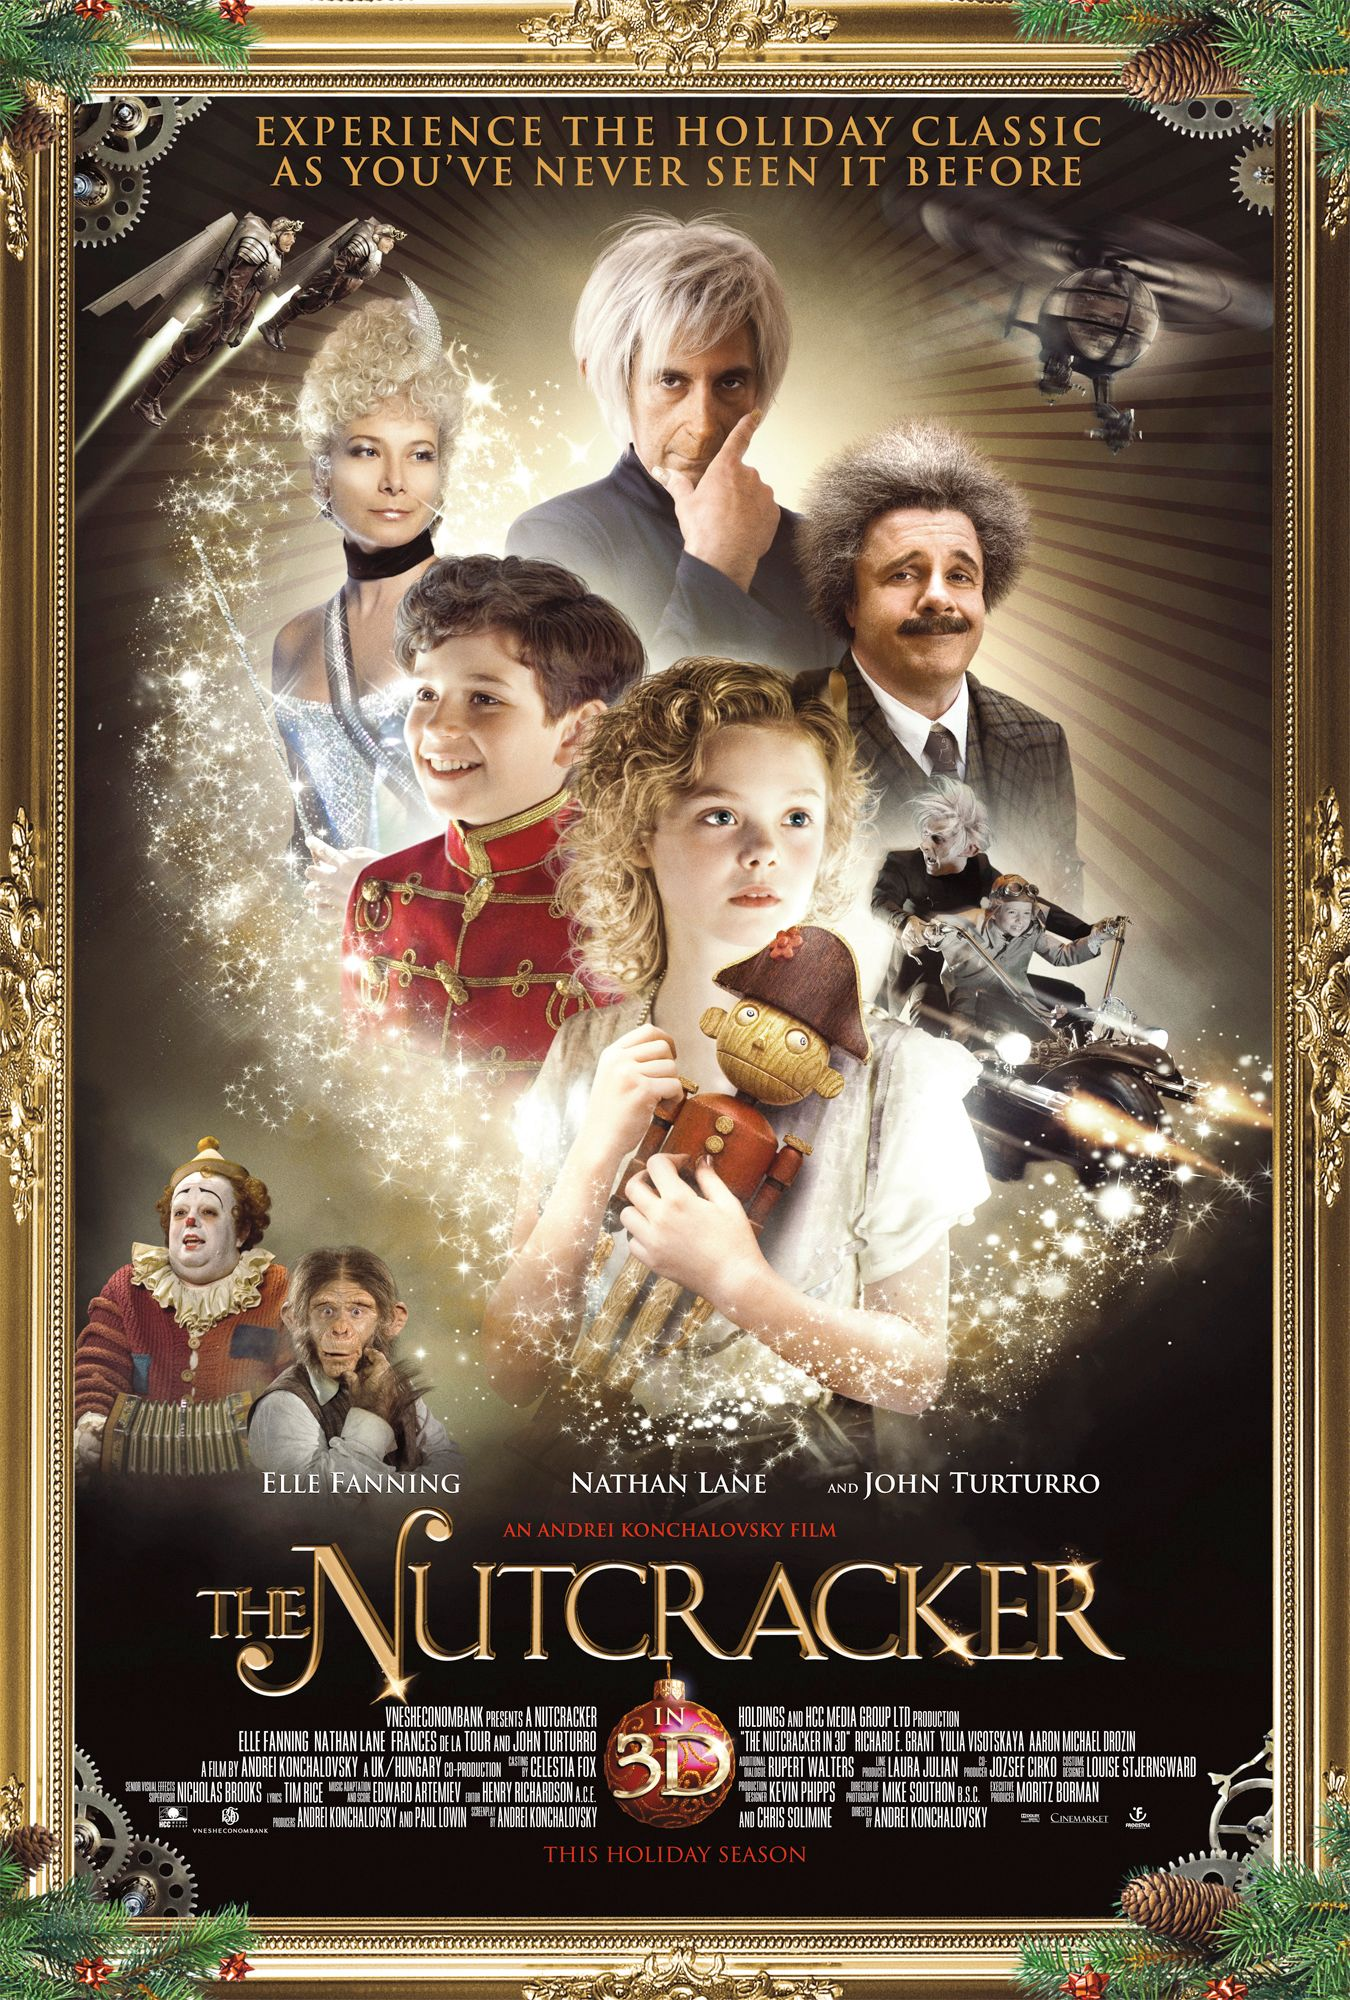 new posters for faster the nutcracker in 3d and priest collider. Black Bedroom Furniture Sets. Home Design Ideas